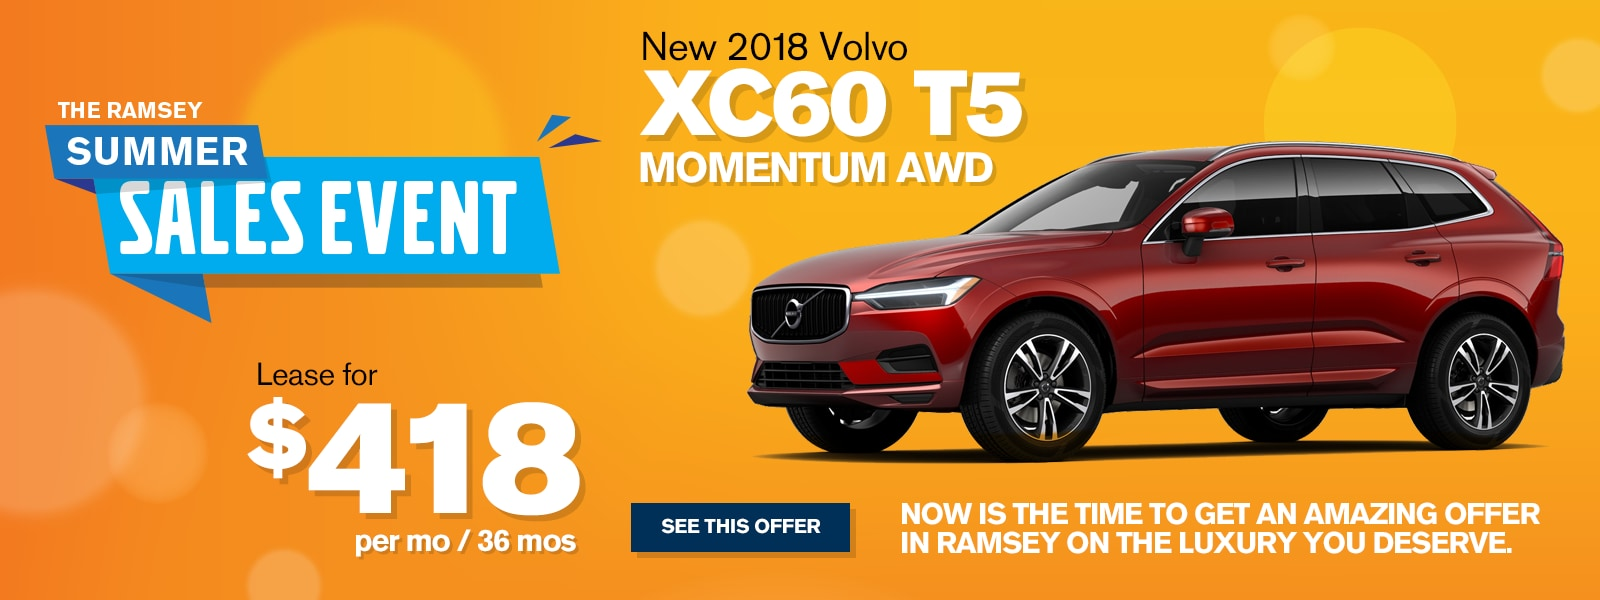 Volvo Cars Ramsey | Volvo Dealership Bergen County NJ